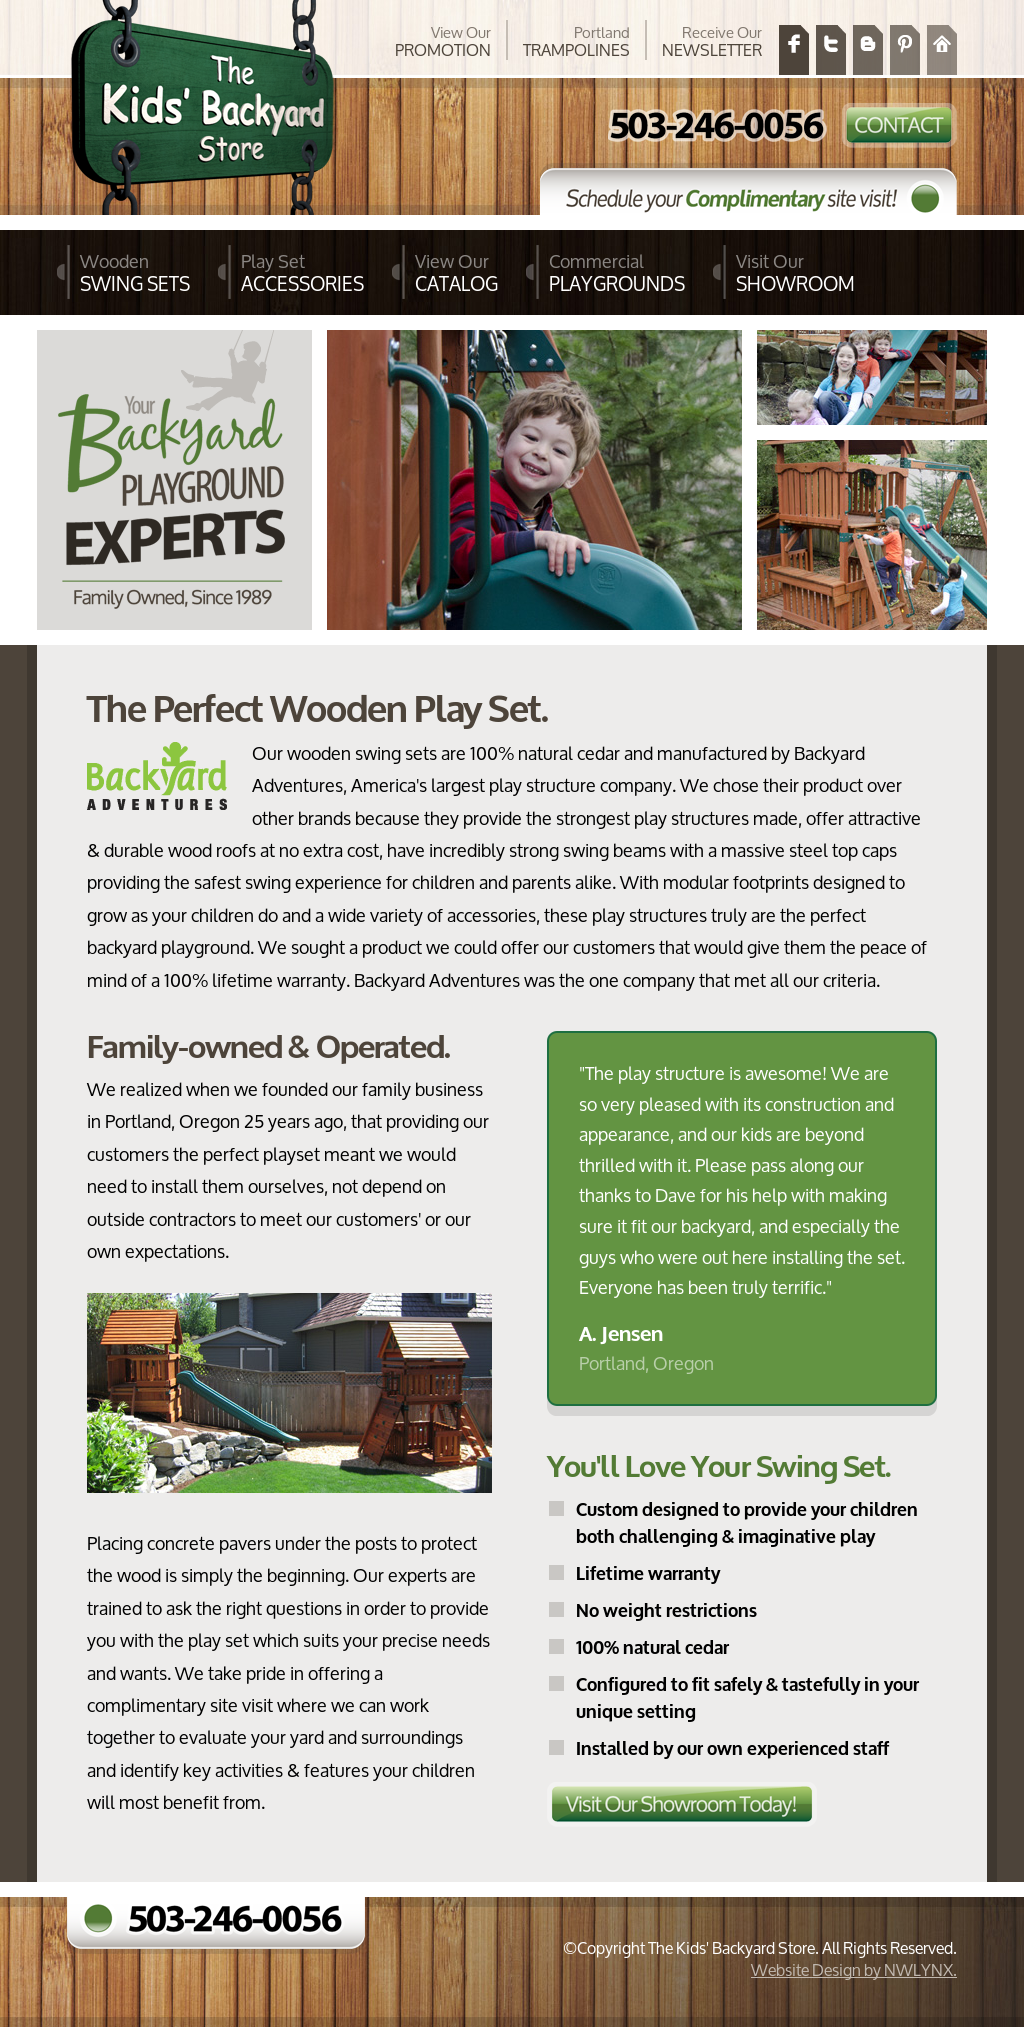 The Kids' Backyard Store Competitors, Revenue and Employees - Owler Company  Profile - The Kids' Backyard Store Competitors, Revenue And Employees - Owler